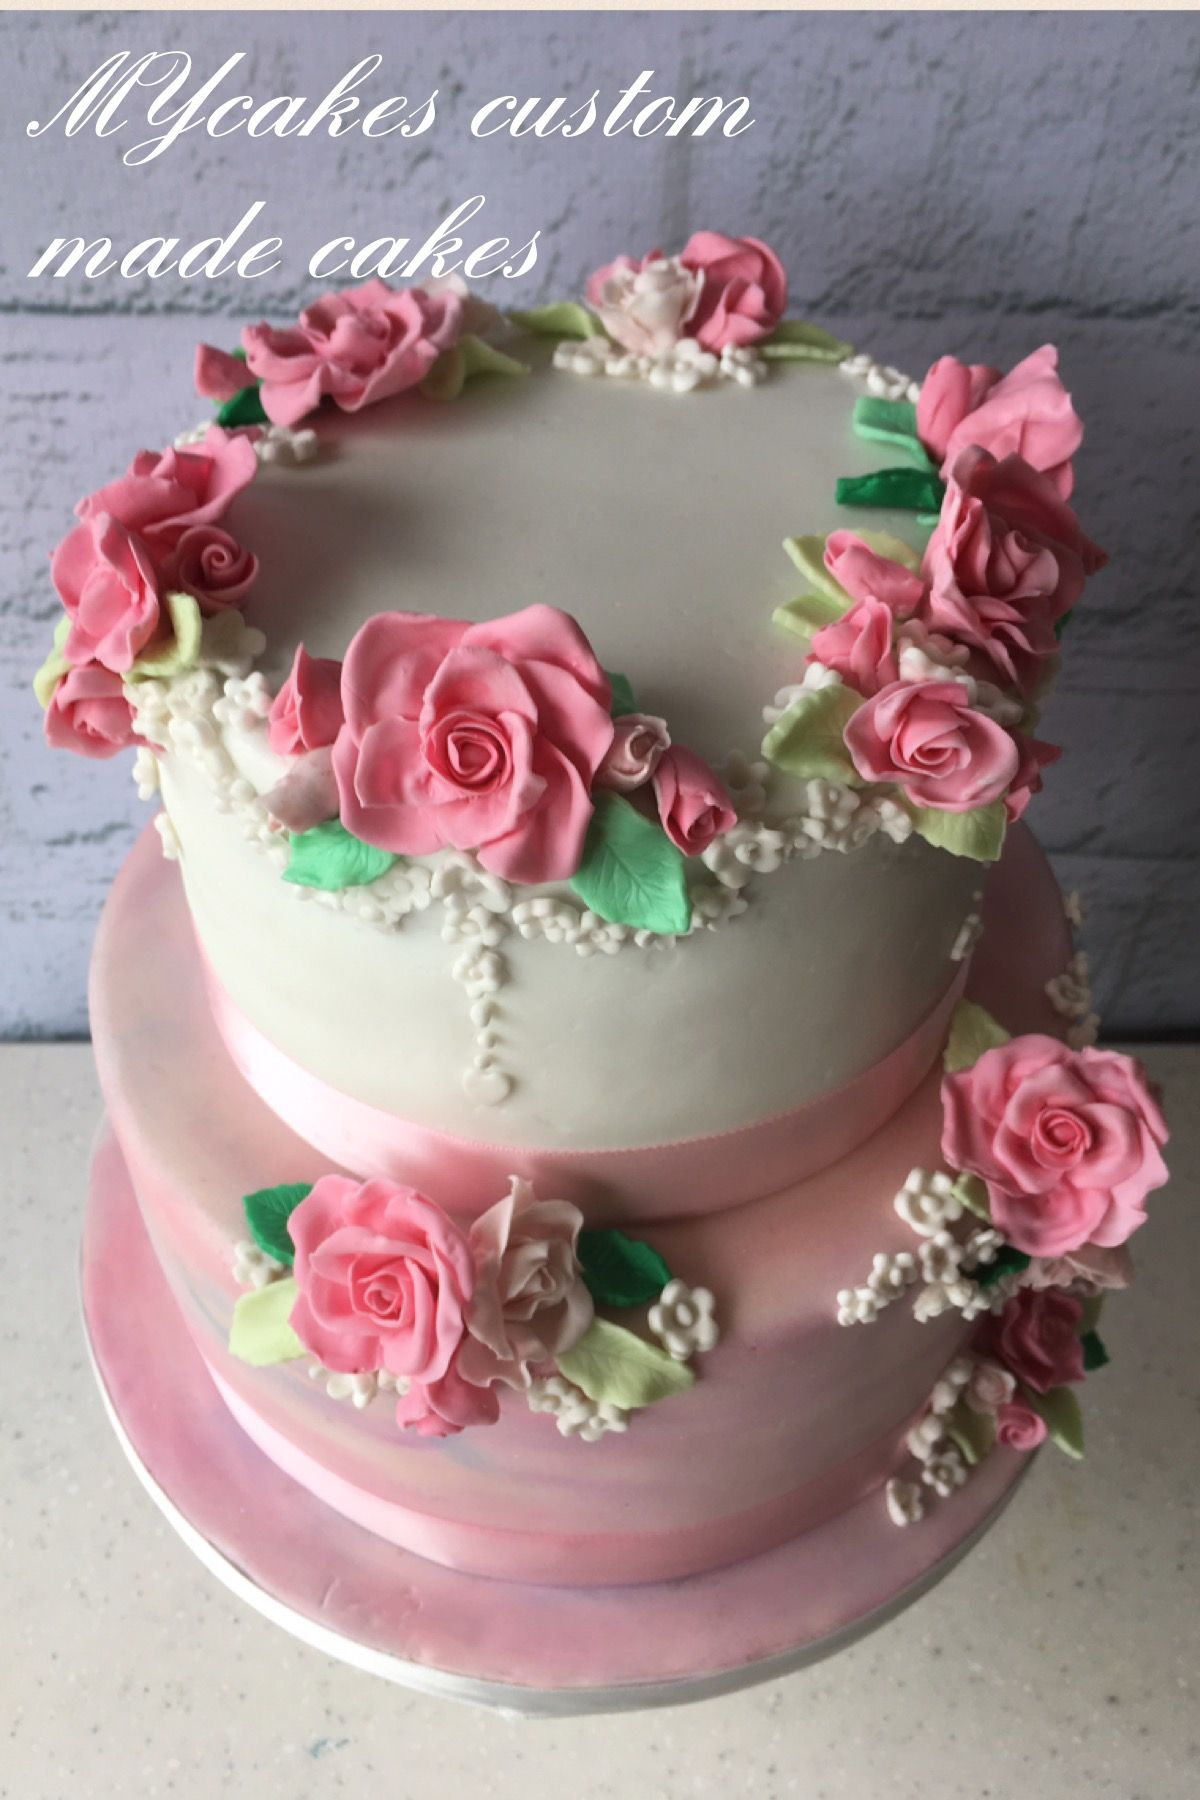 Pretty In Pink Rose Birthday Cake Mycakes Custom Made Cake And